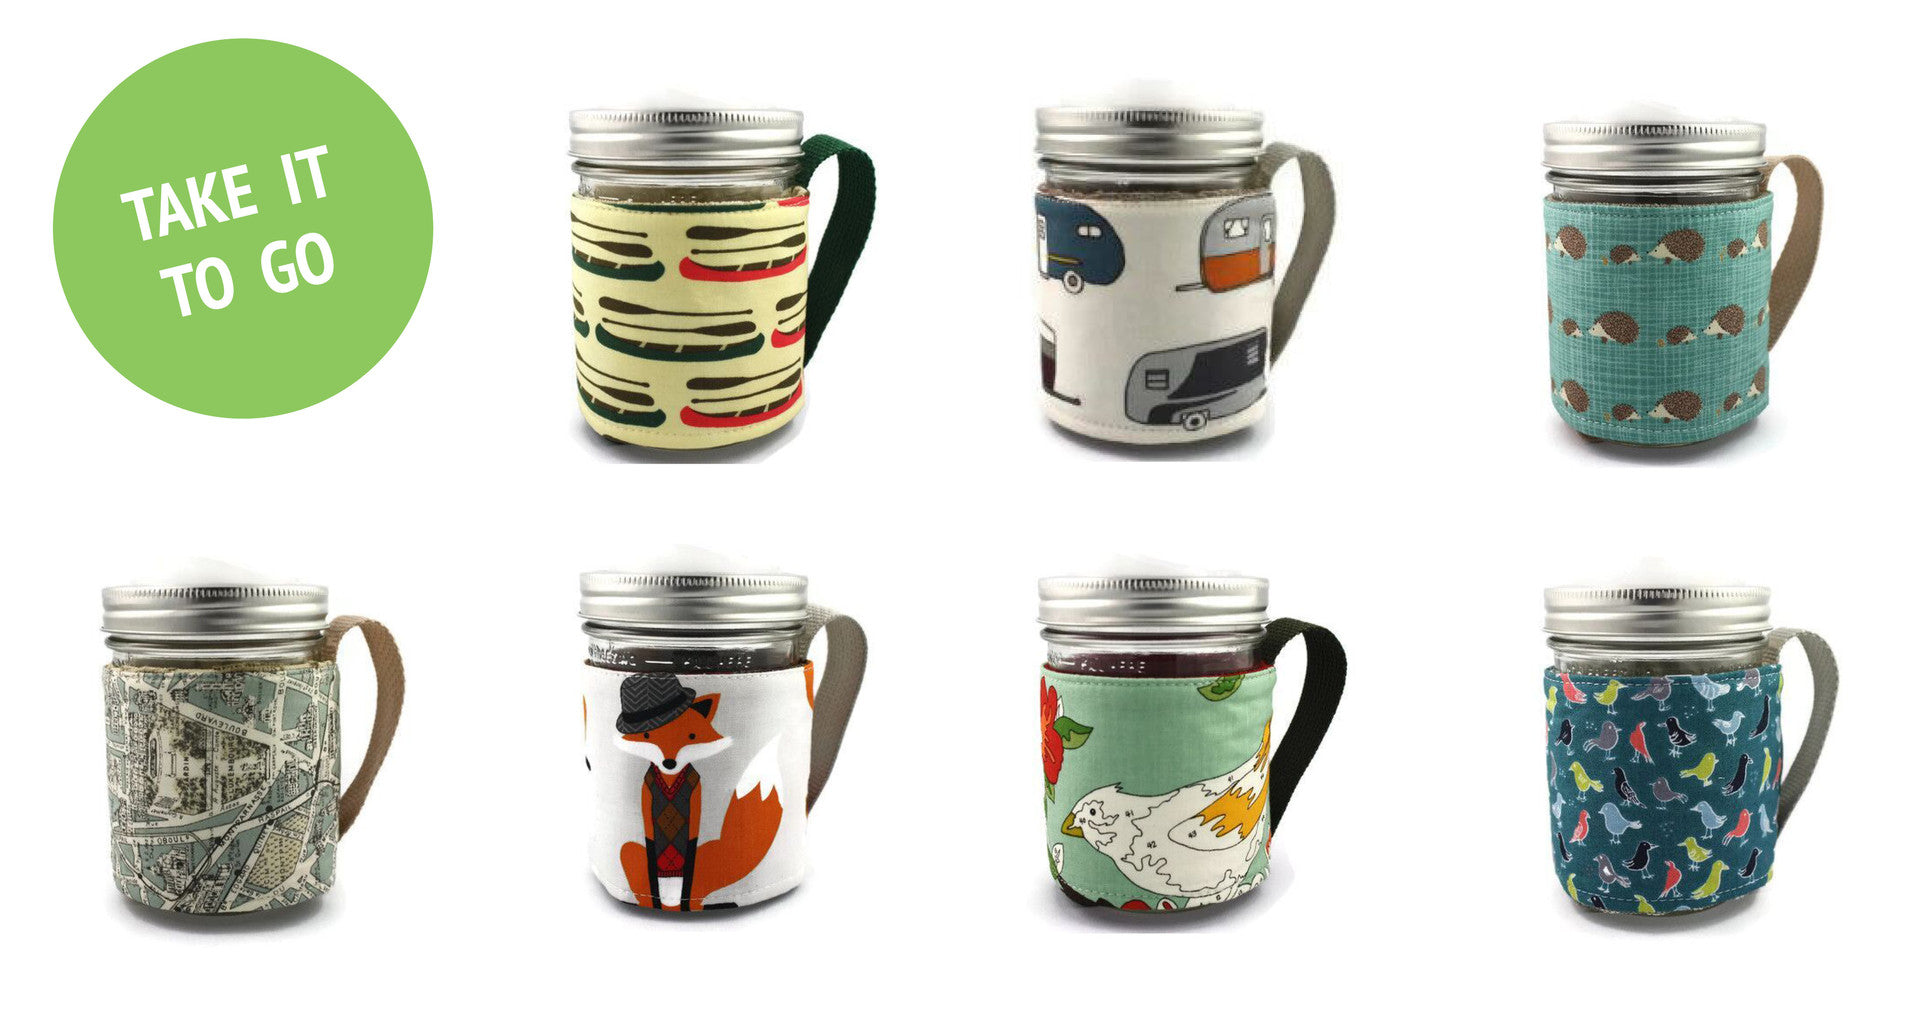 Refluff Mason jar travel mugs. Ecofriendly & sustainable. Made in Canada.